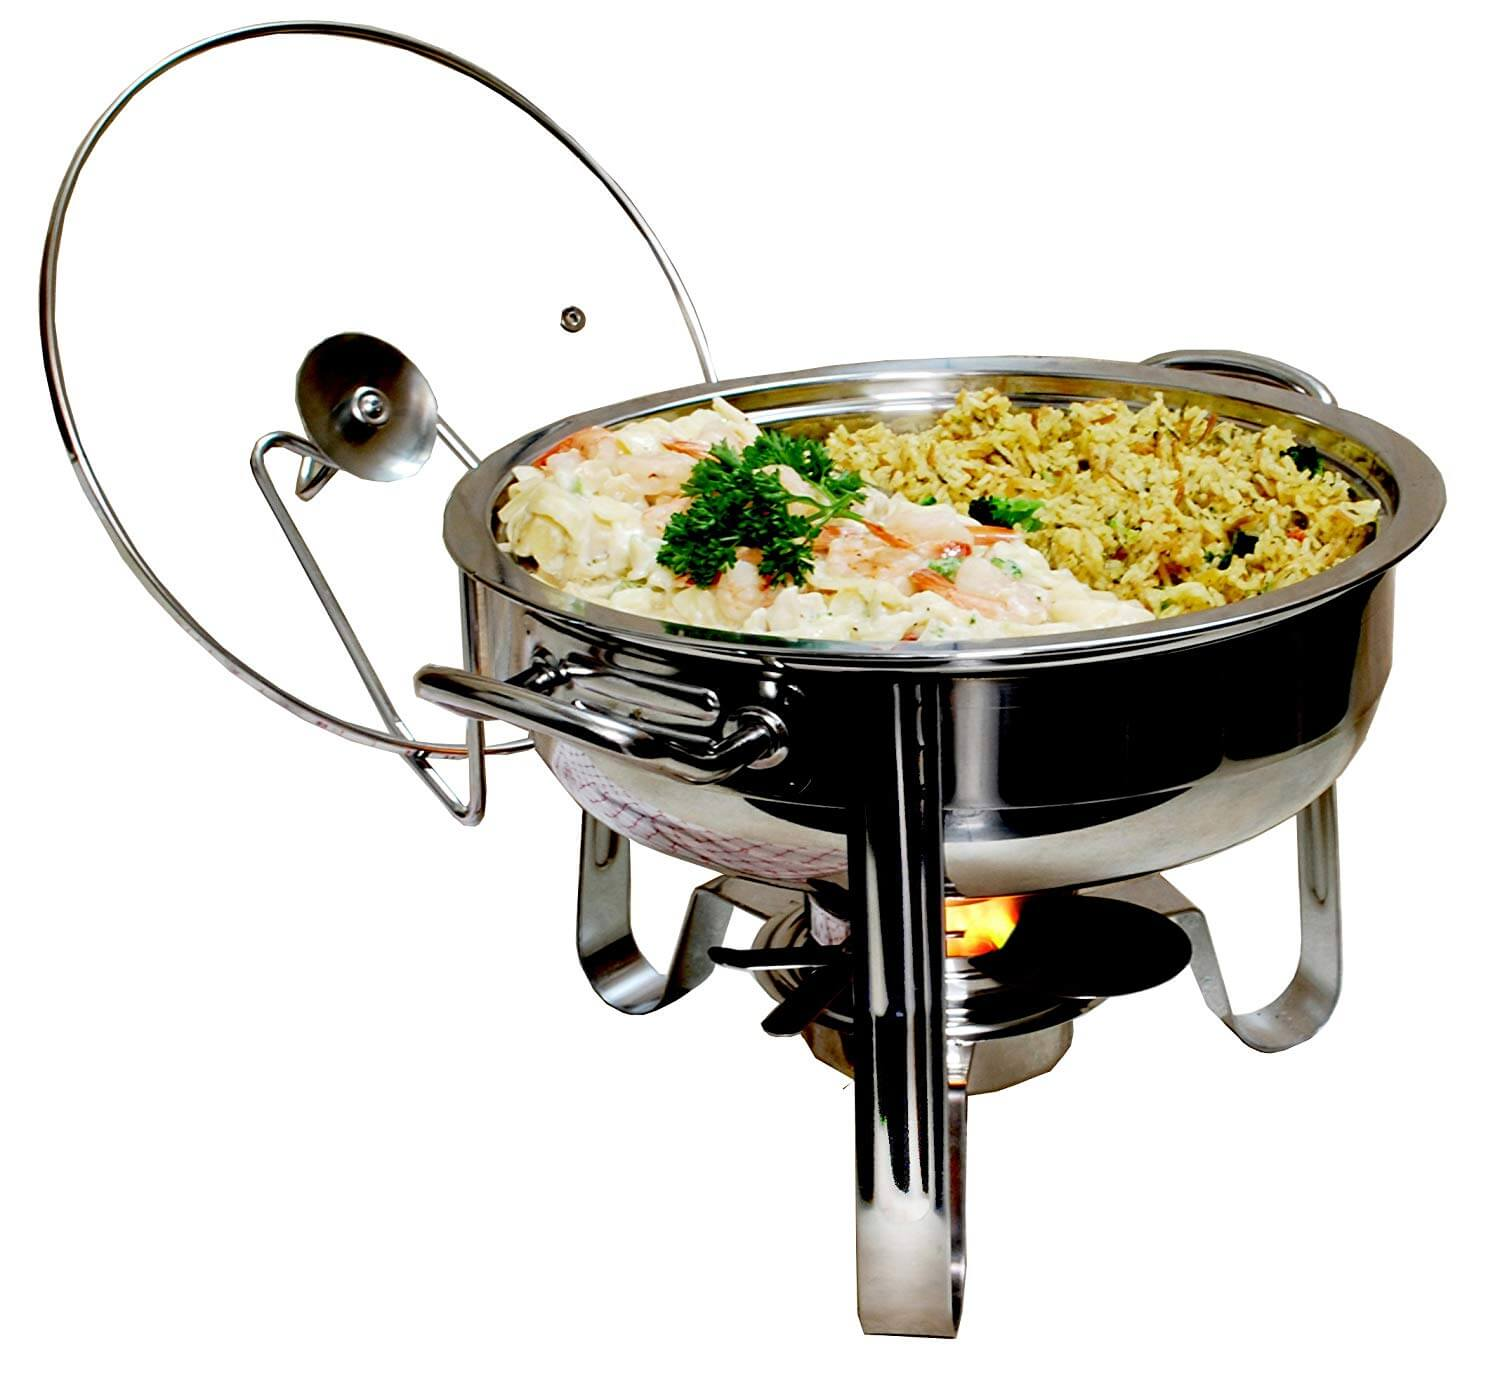 Excelsteel Stainless Chafing Dish